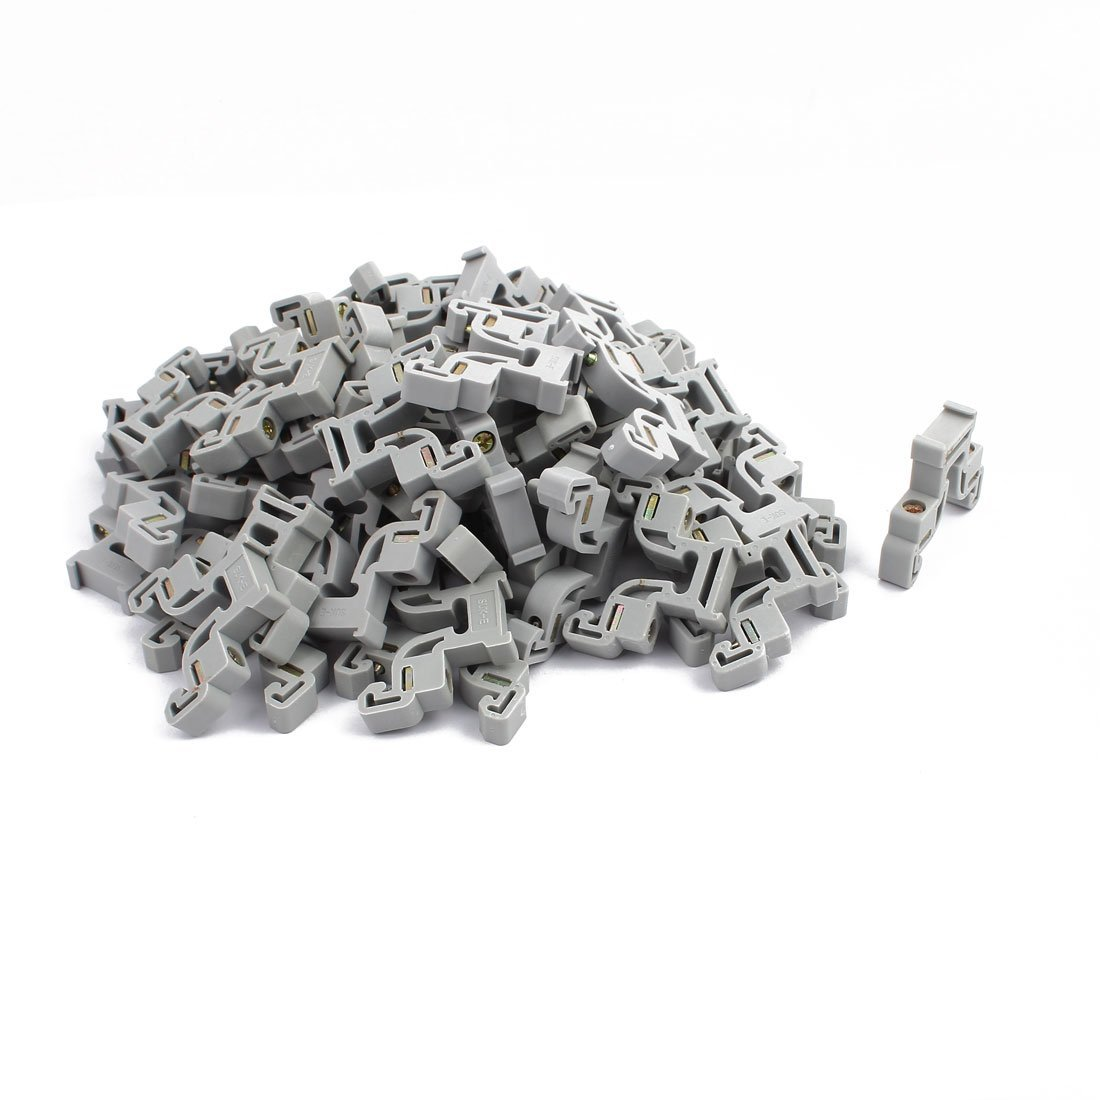 Aexit 50Pcs 43x35x8mm 35mm DIN Rail End Screw Clamp Terminal Fixed Block Gray